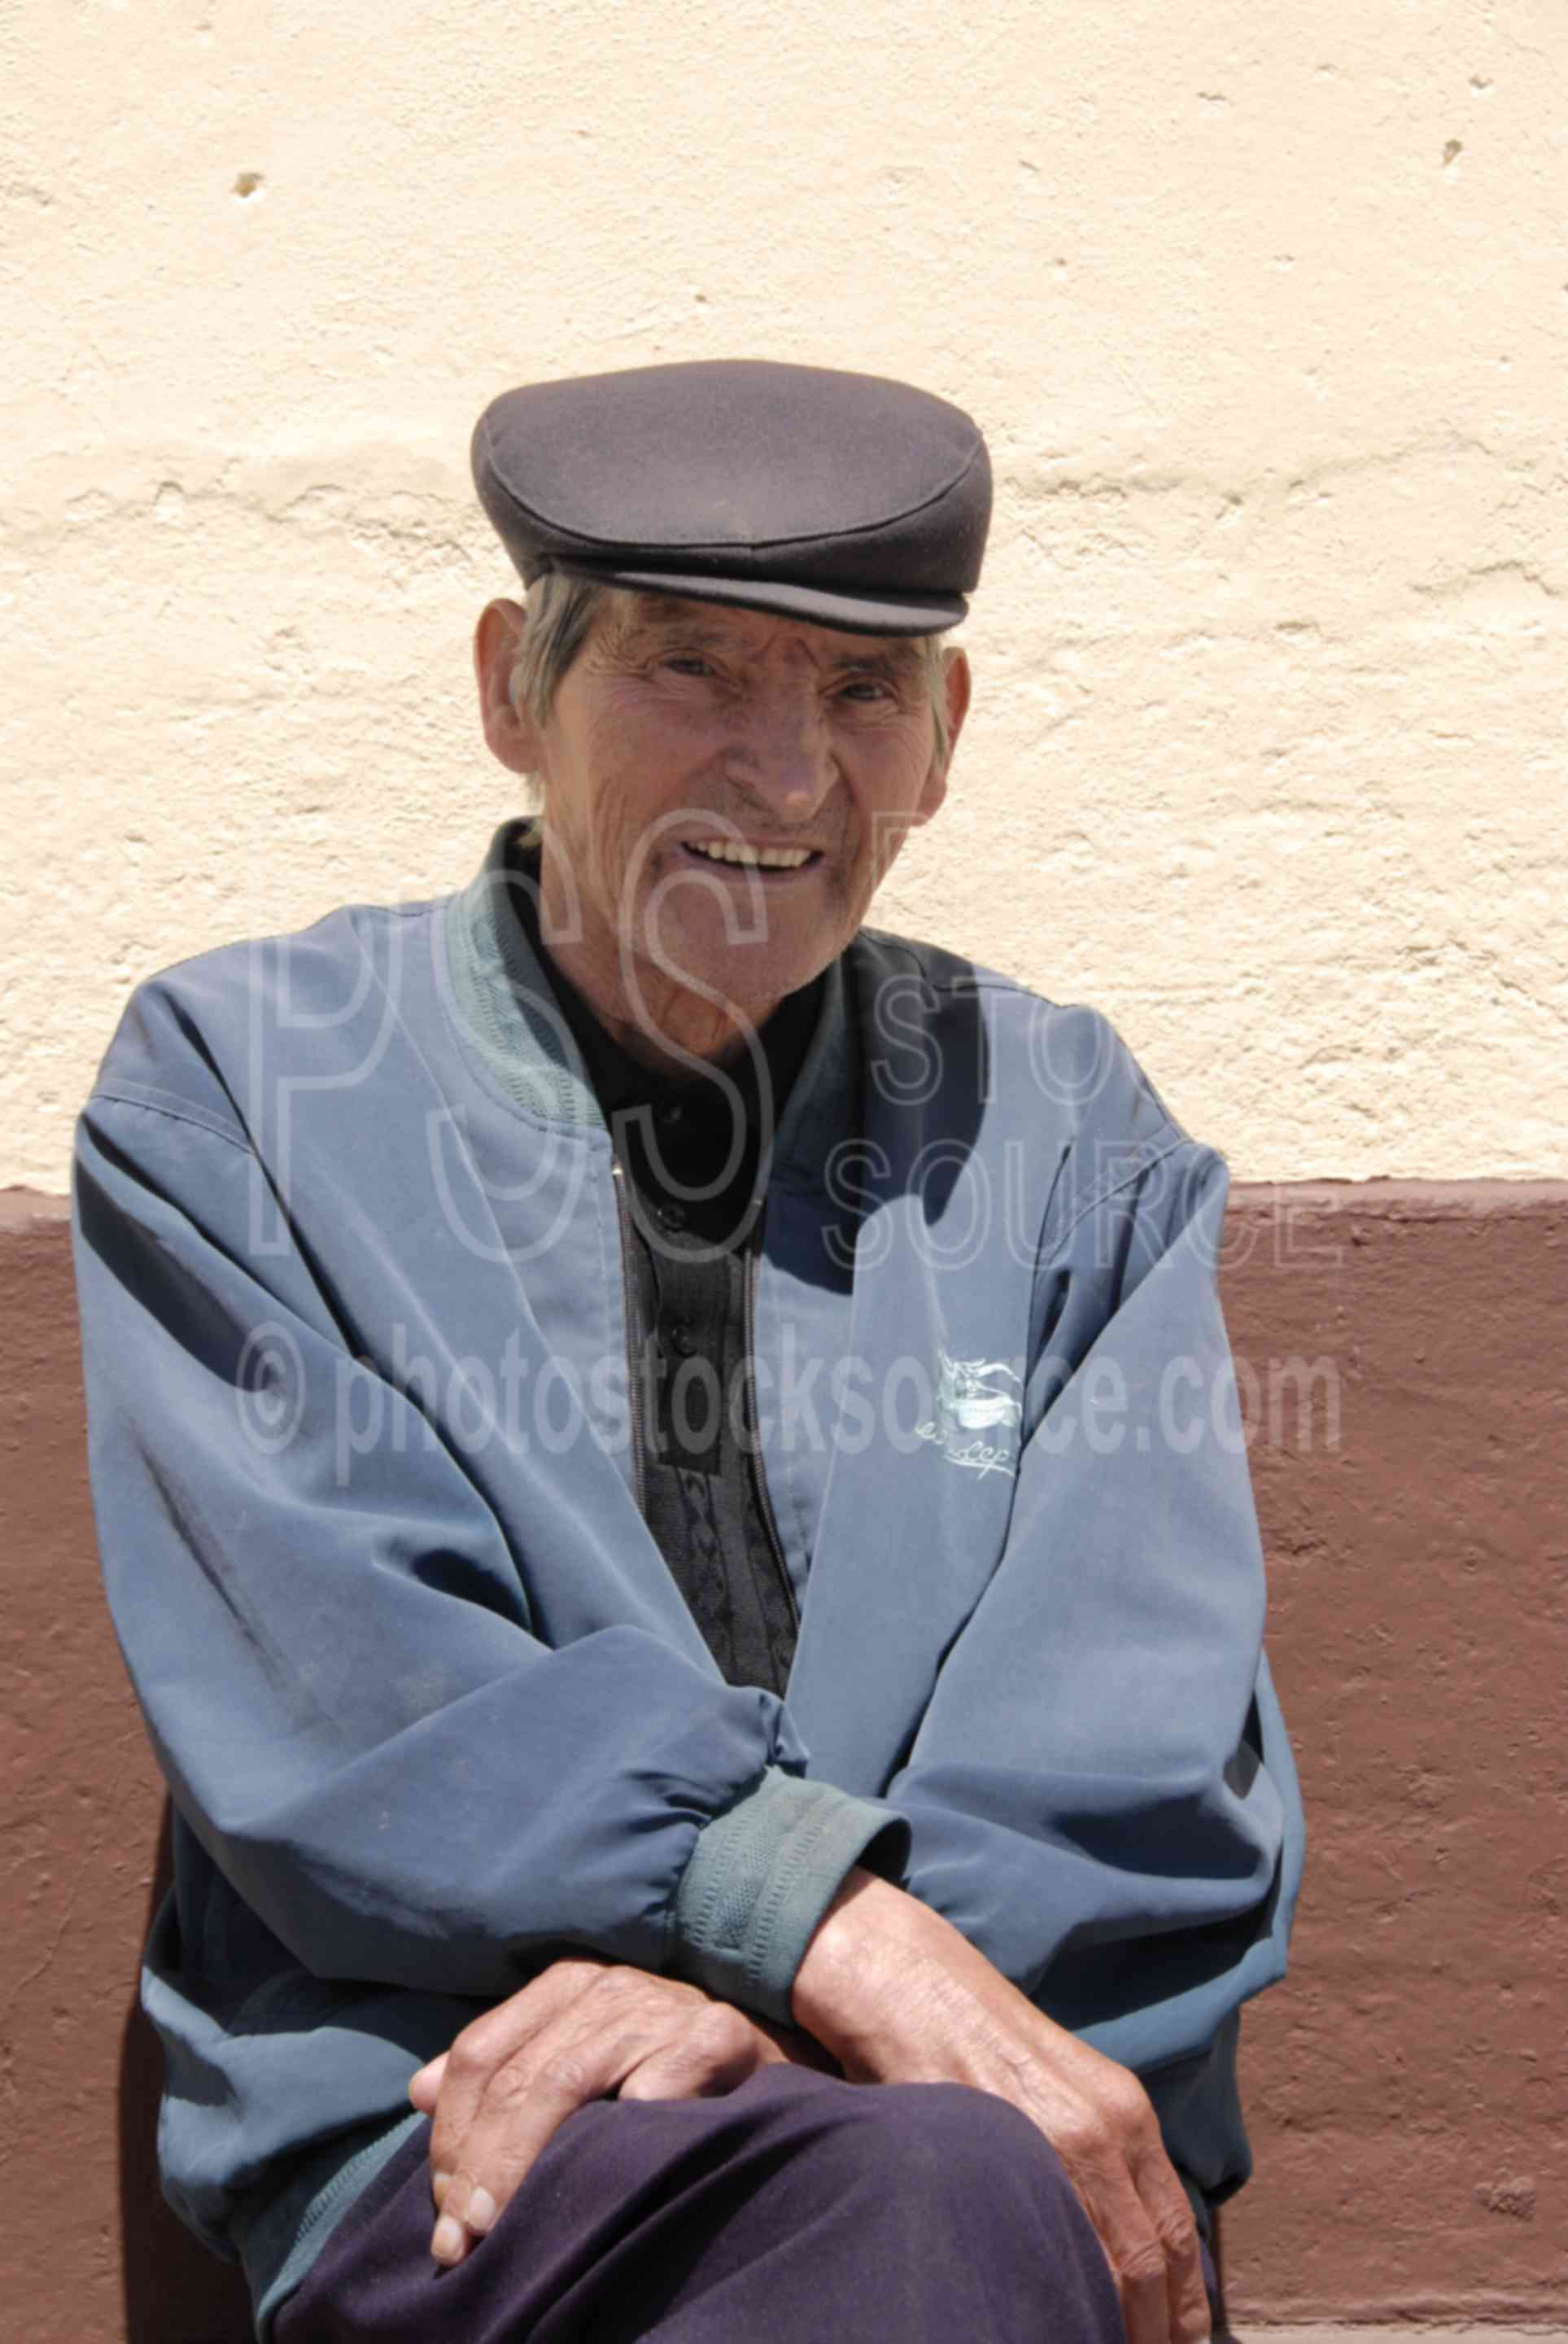 Old Fisherman,mans,hats,flat hat